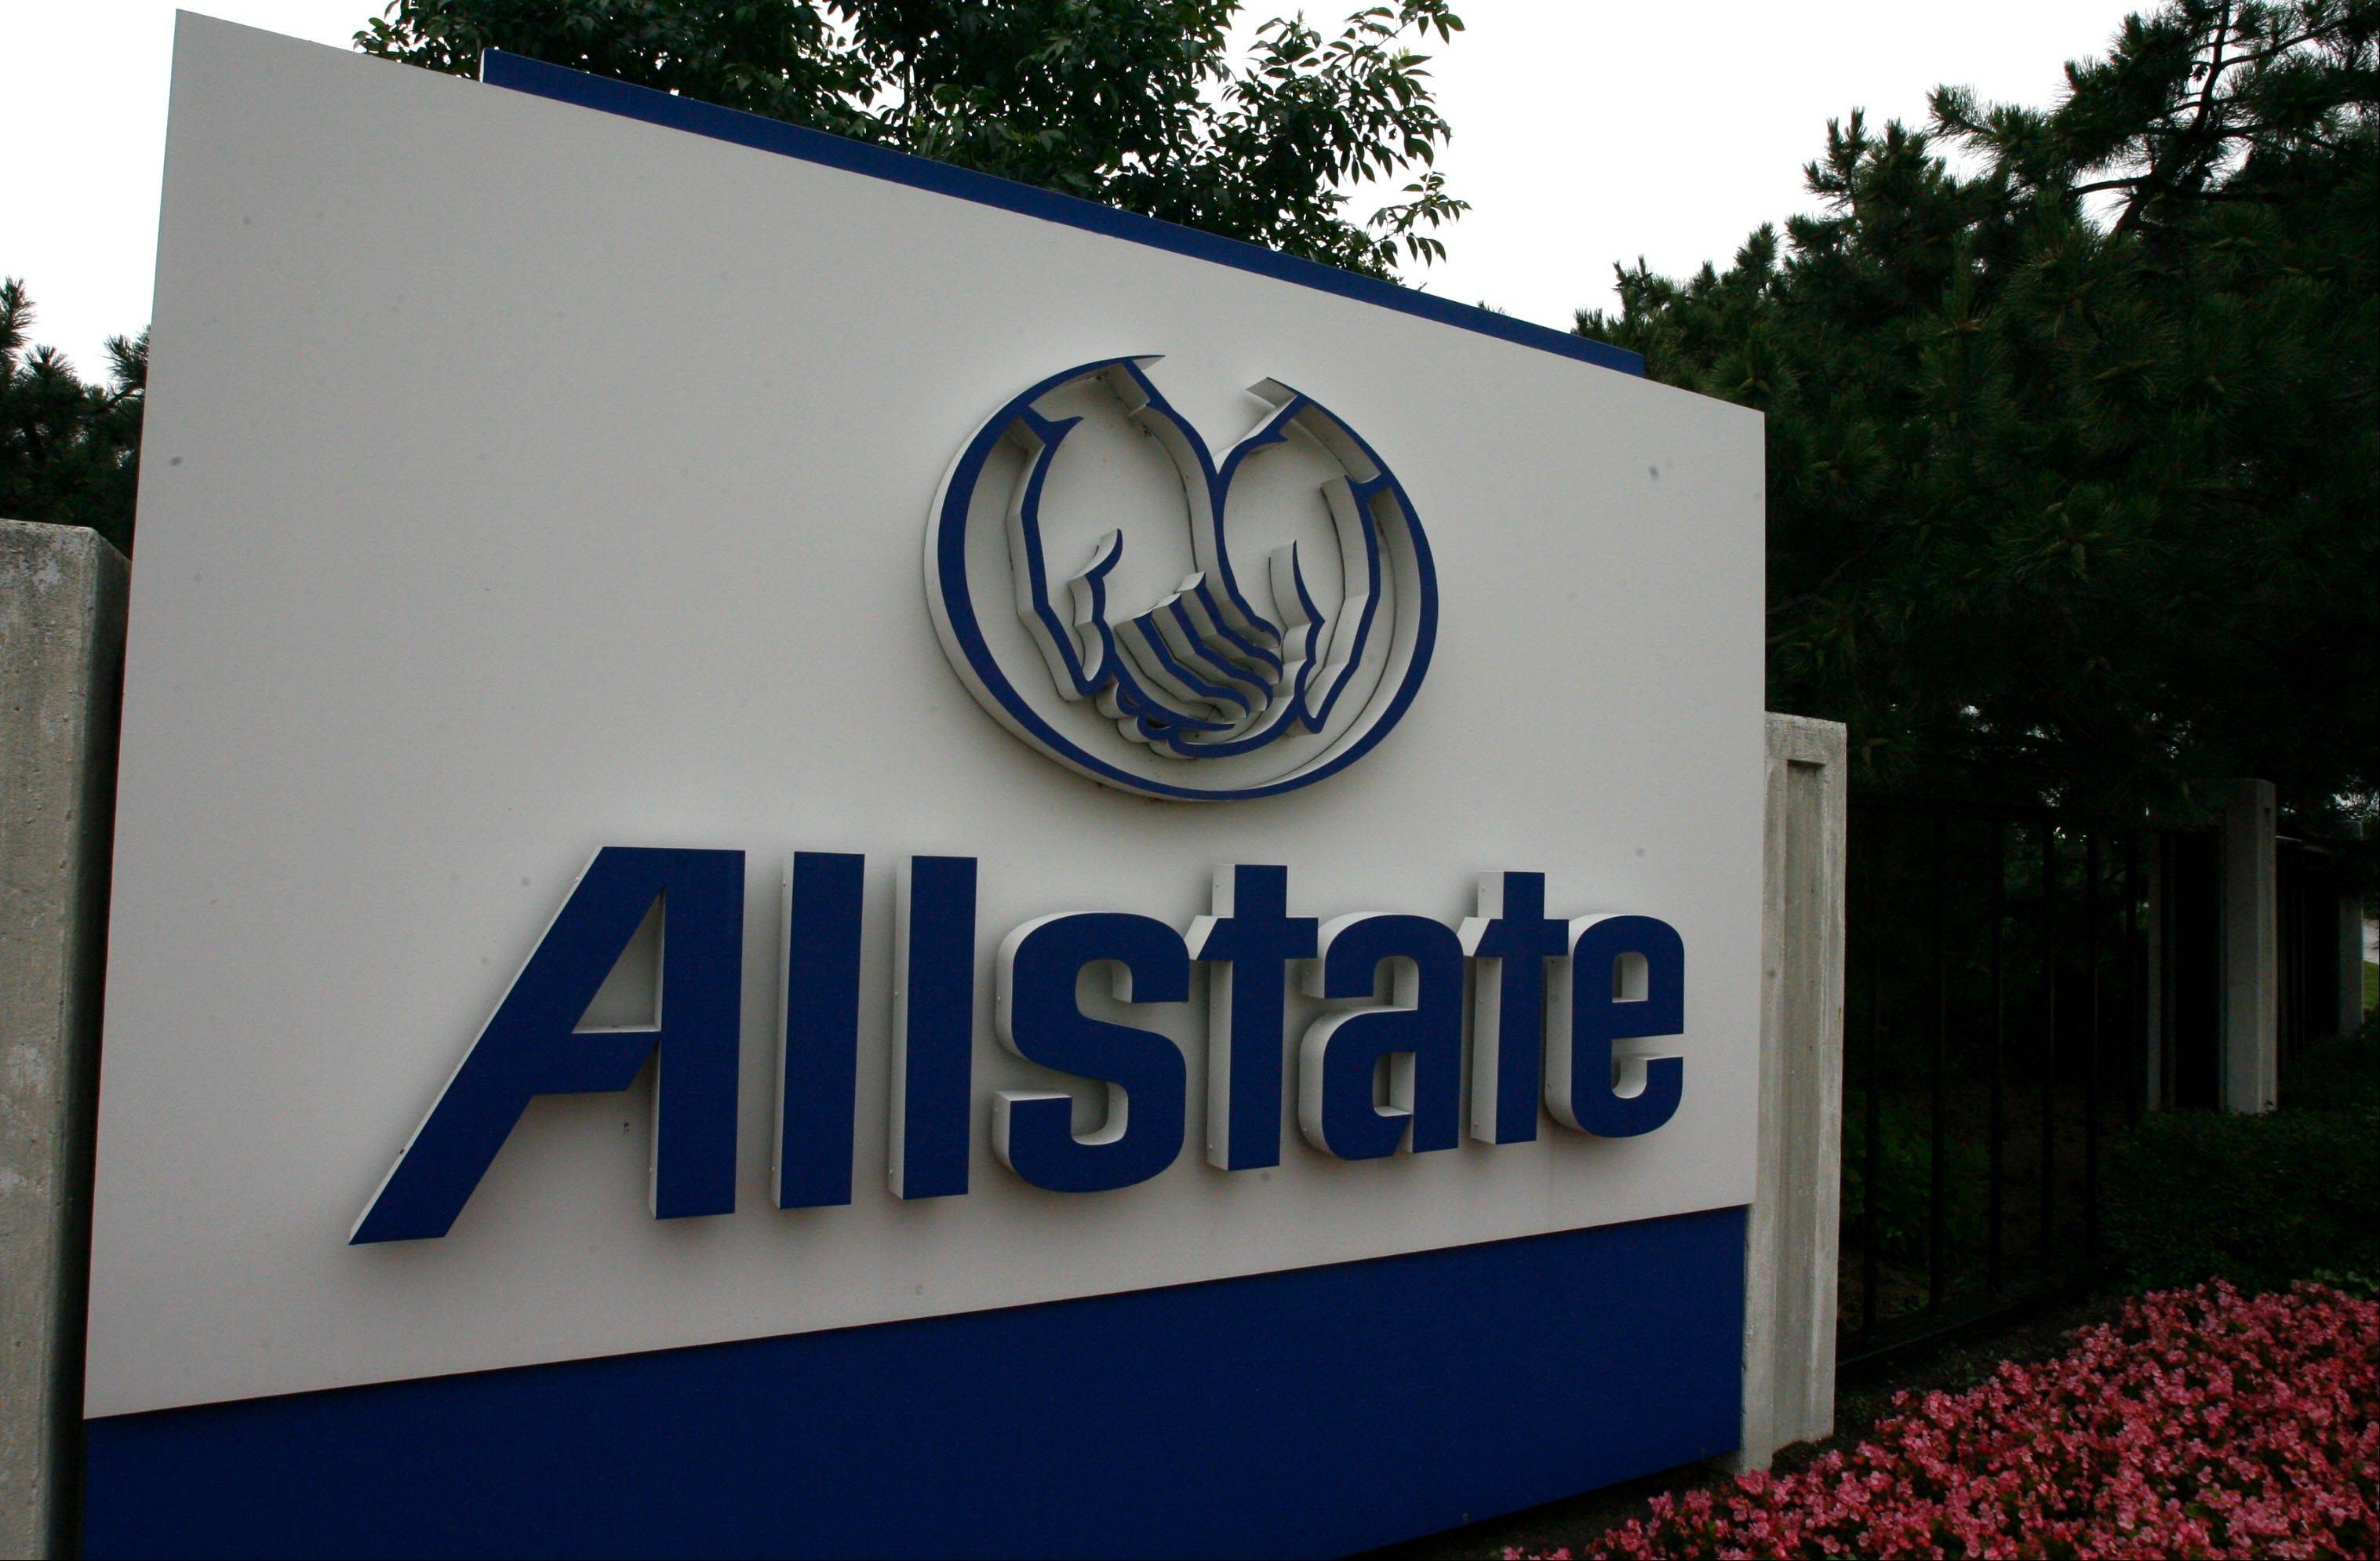 Northbrook-based Allstate said Wednesday its net income more than doubled in the fourth quarter compared with a year ago,